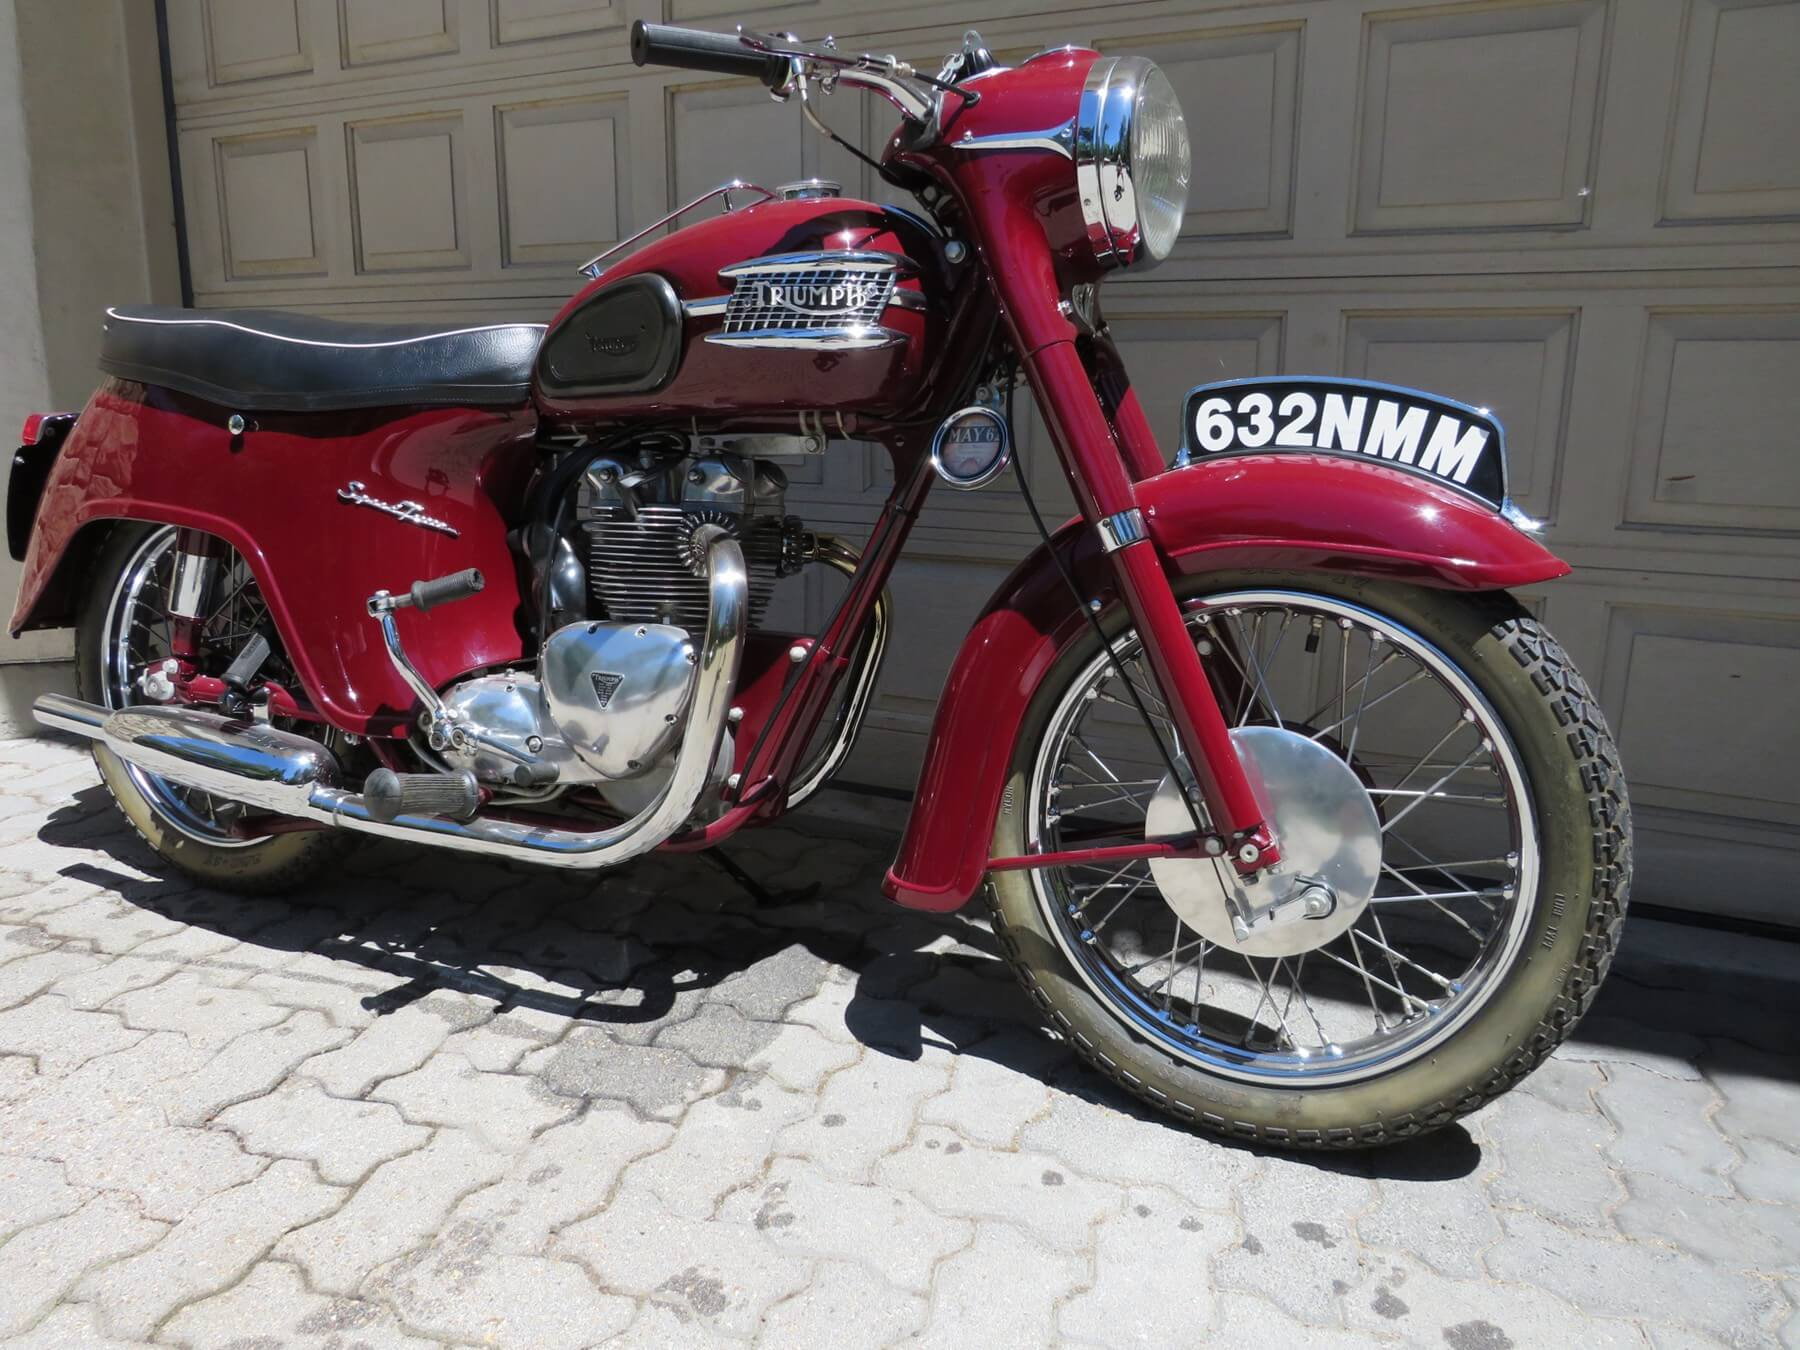 1962 Triumph 5TA Speed Twin – Castoro Collection